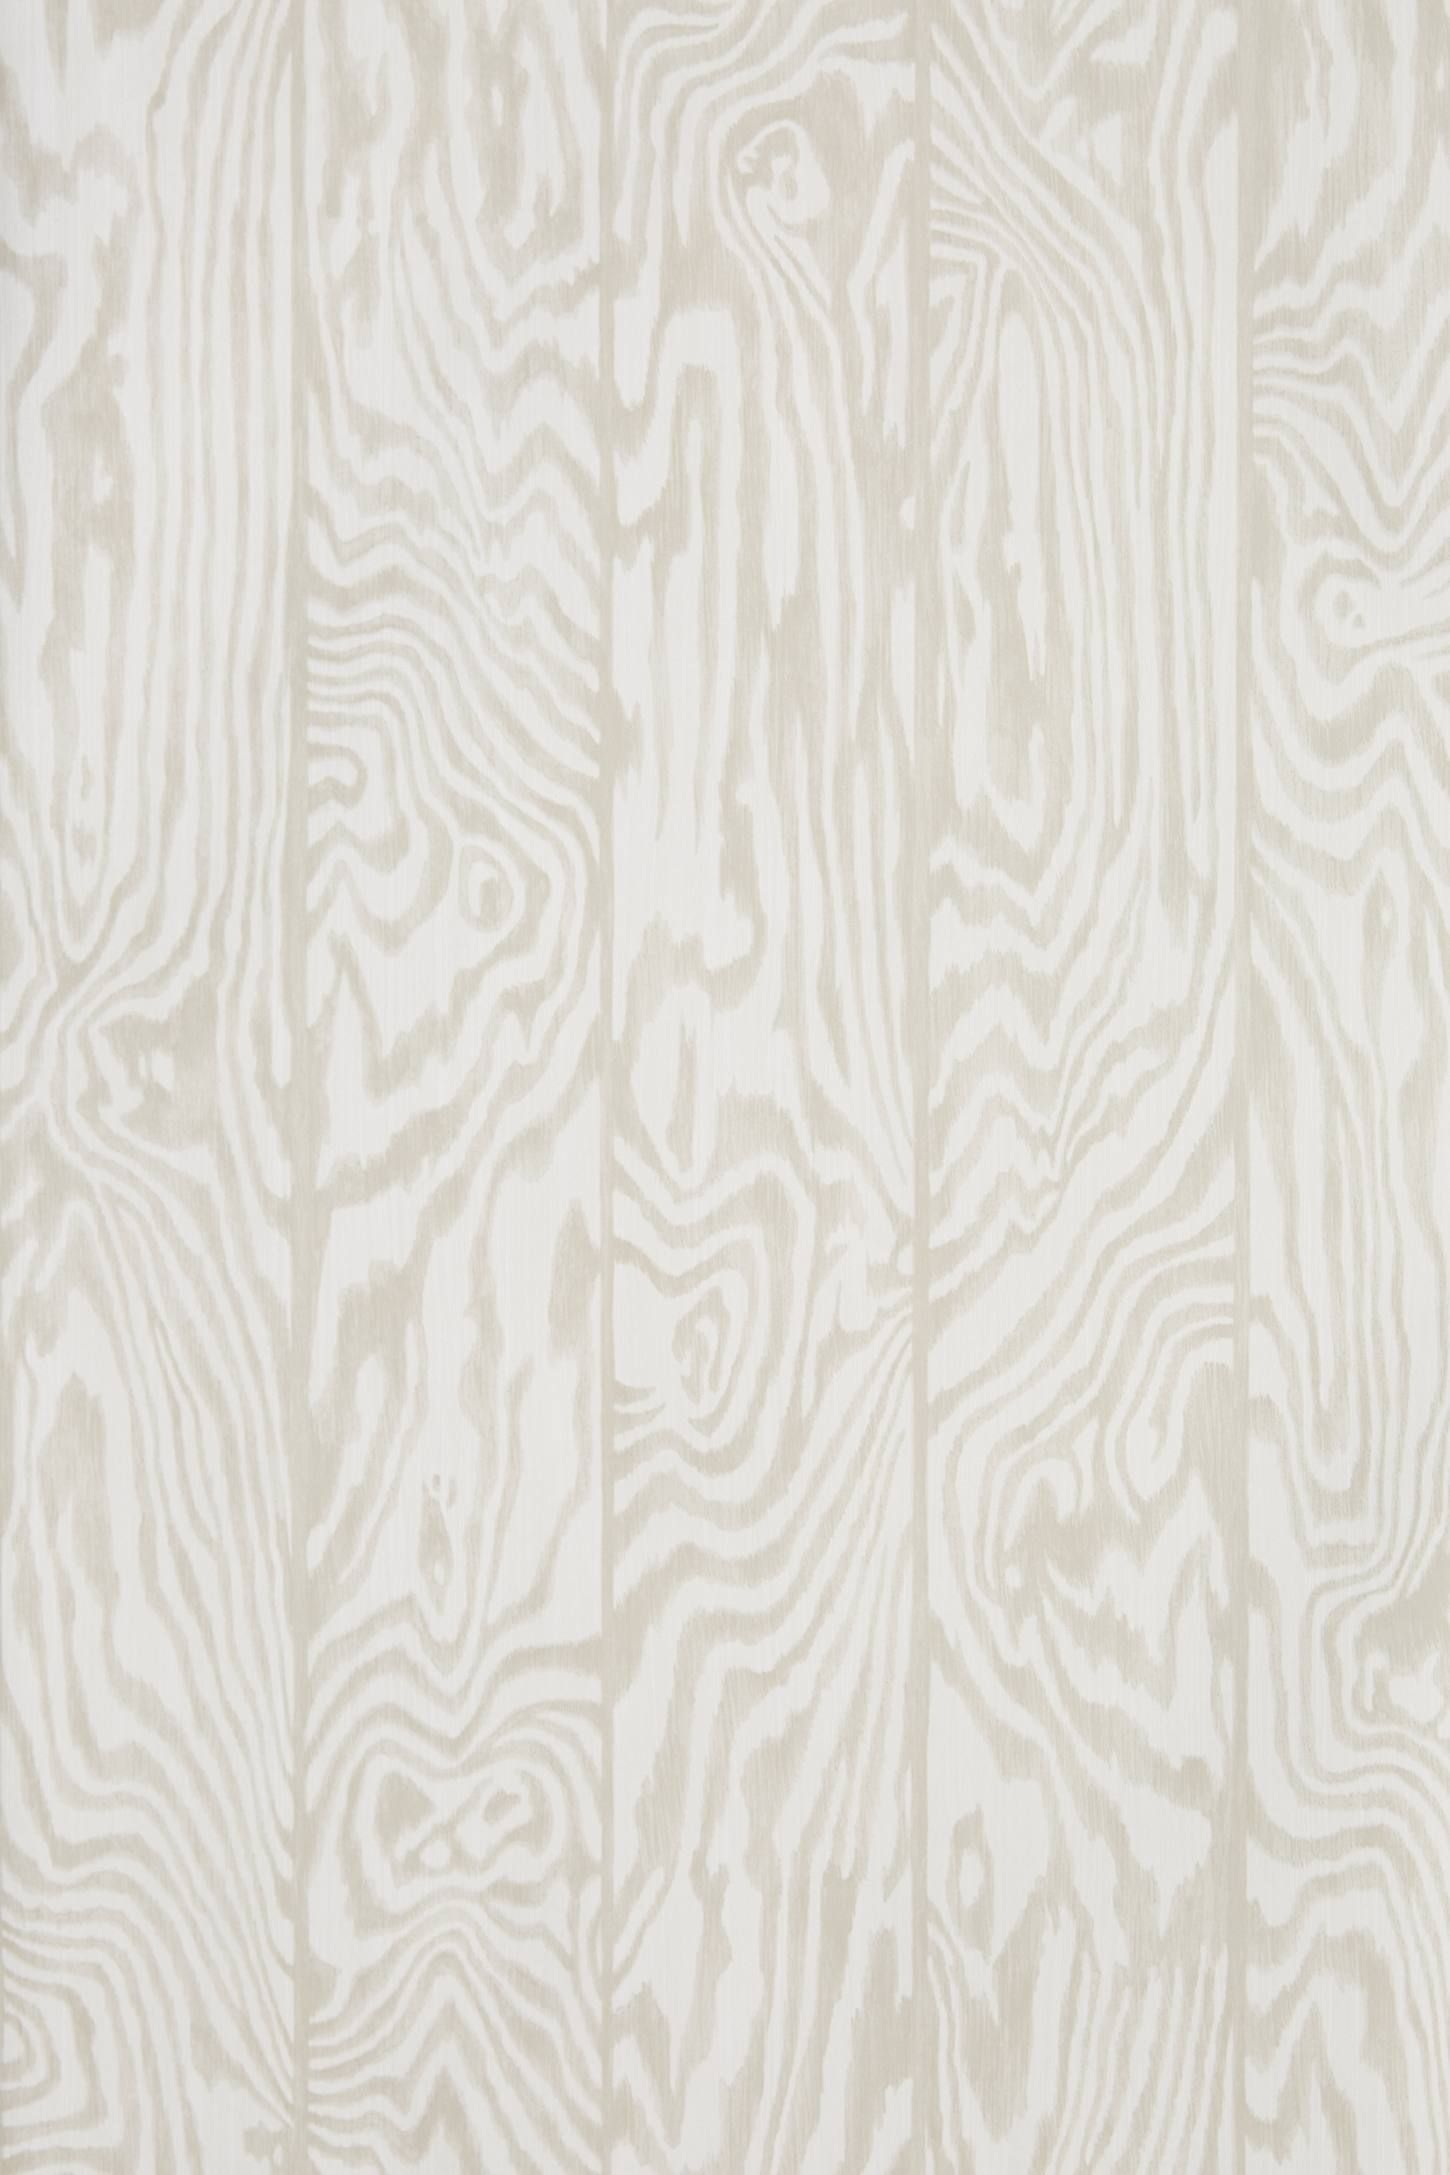 Zebrawood Wallpaper (With images) Zebra wood